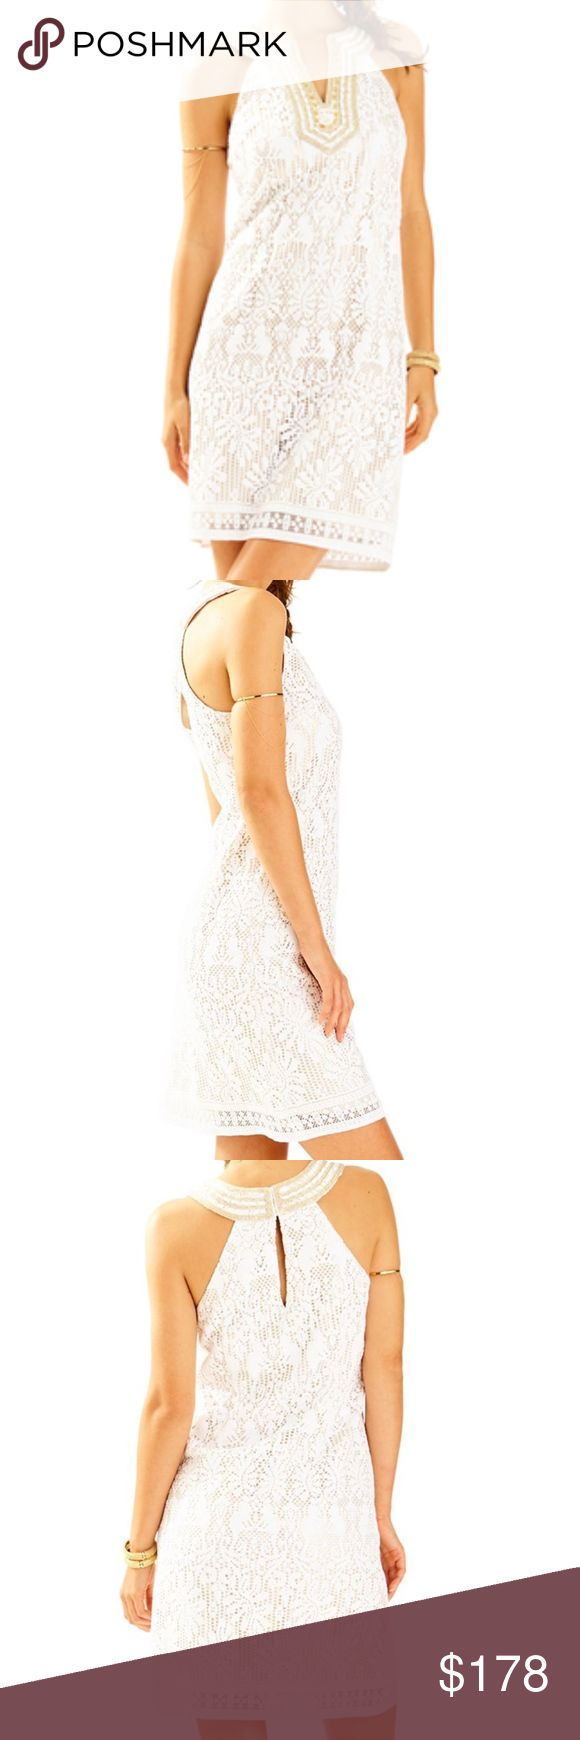 "LILLY PULITZER Calera Shift Dress in White NWT! LILLY PULITZER Calera Shift Dress in White  The Calera Shift is much more than your average white dress. This easy gold and white shift comes in an engineered jungle lace, has an embellished notch neckline with beading, and a hook and eye back.  Easy Shift Dress With An Embellished Notch Neckline. 37"" From Top Of Shoulder To Hem. Length: Knee Length. Engineered Jungle Lace (80% Cotton, 20% Polyamide). Hand Wash Cold. Separately. Imported. Style…"